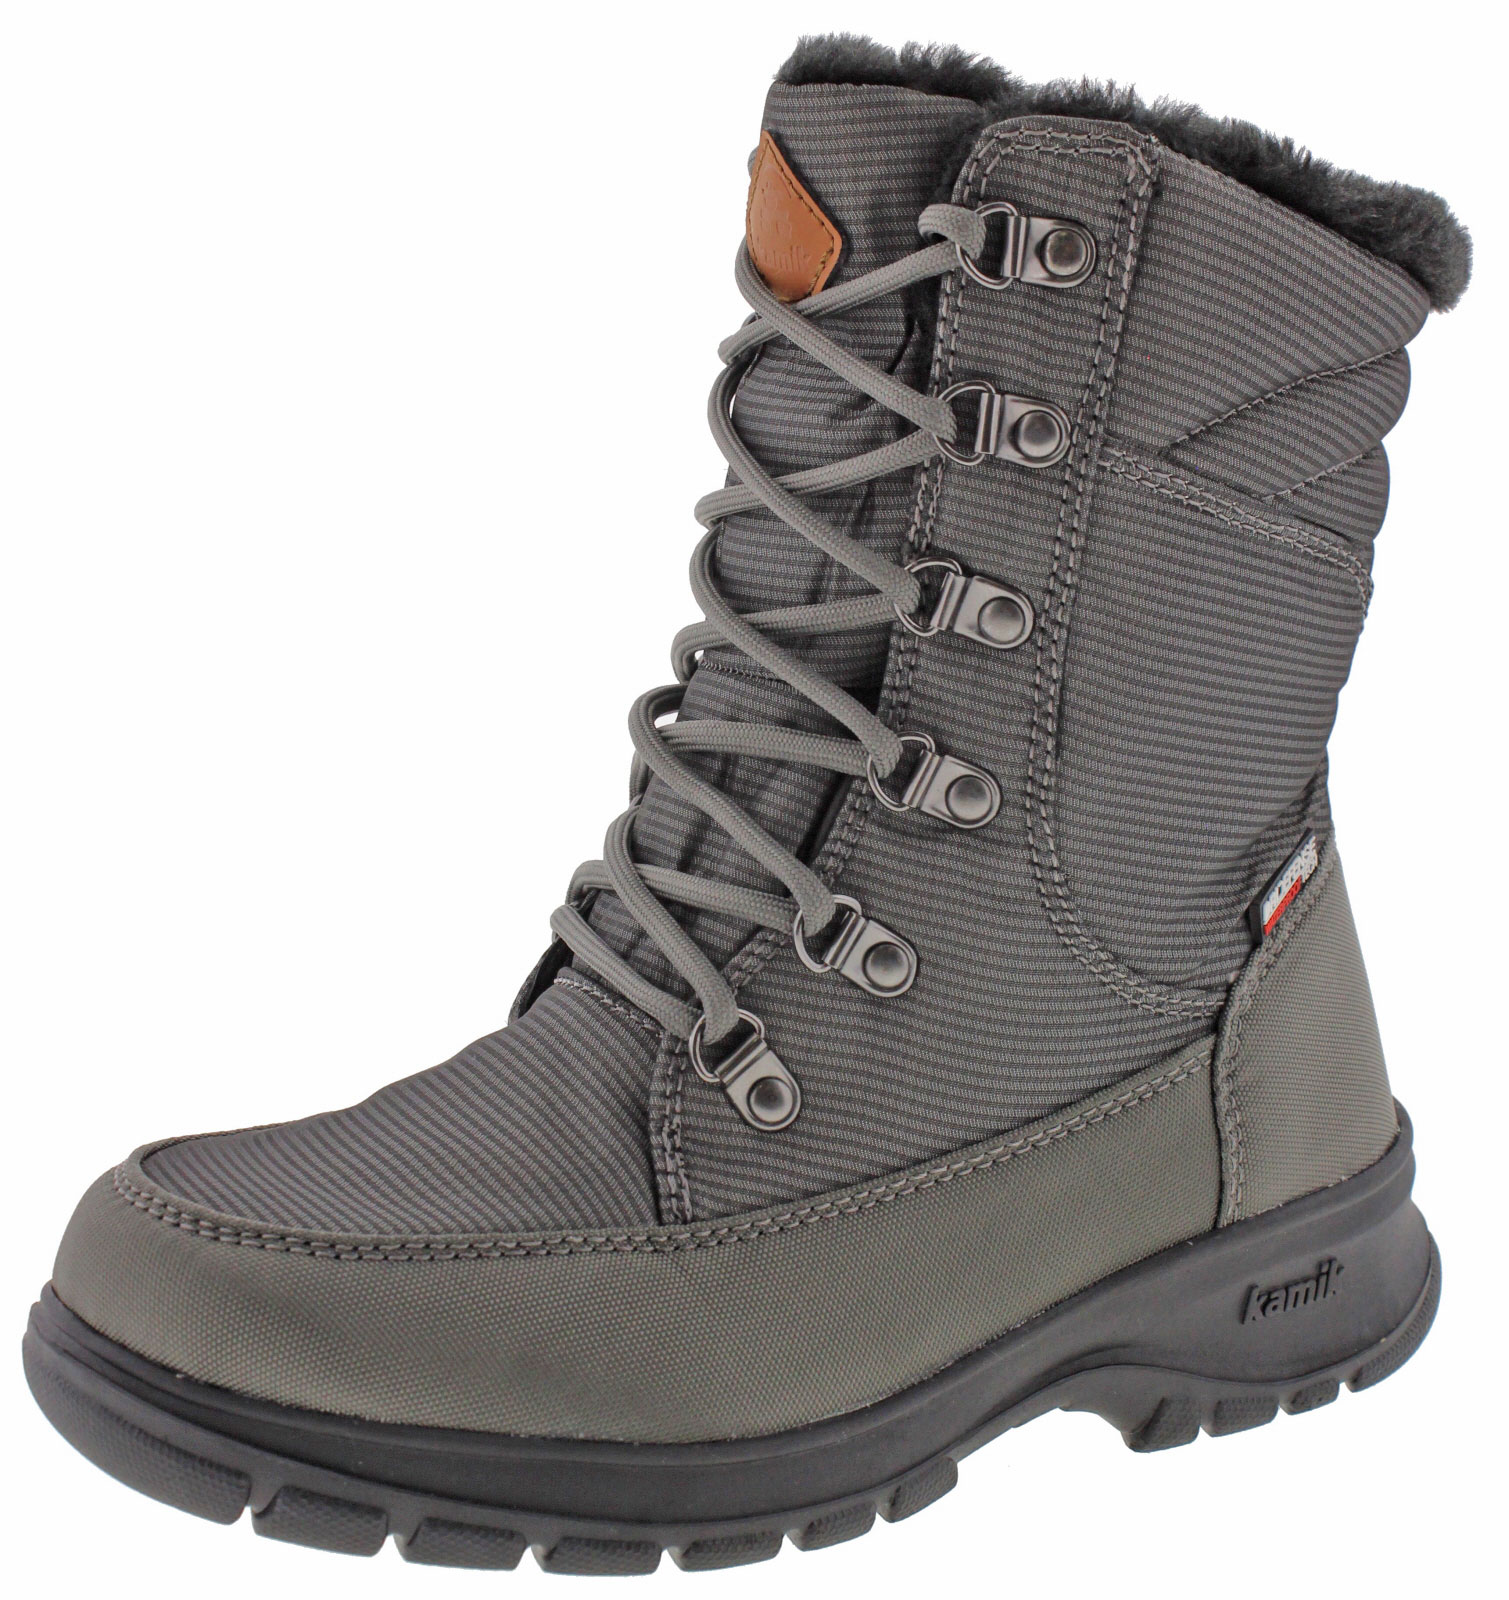 Kamik Bronx Women's Waterproof Nylon Snow Boots Fleece Lined by